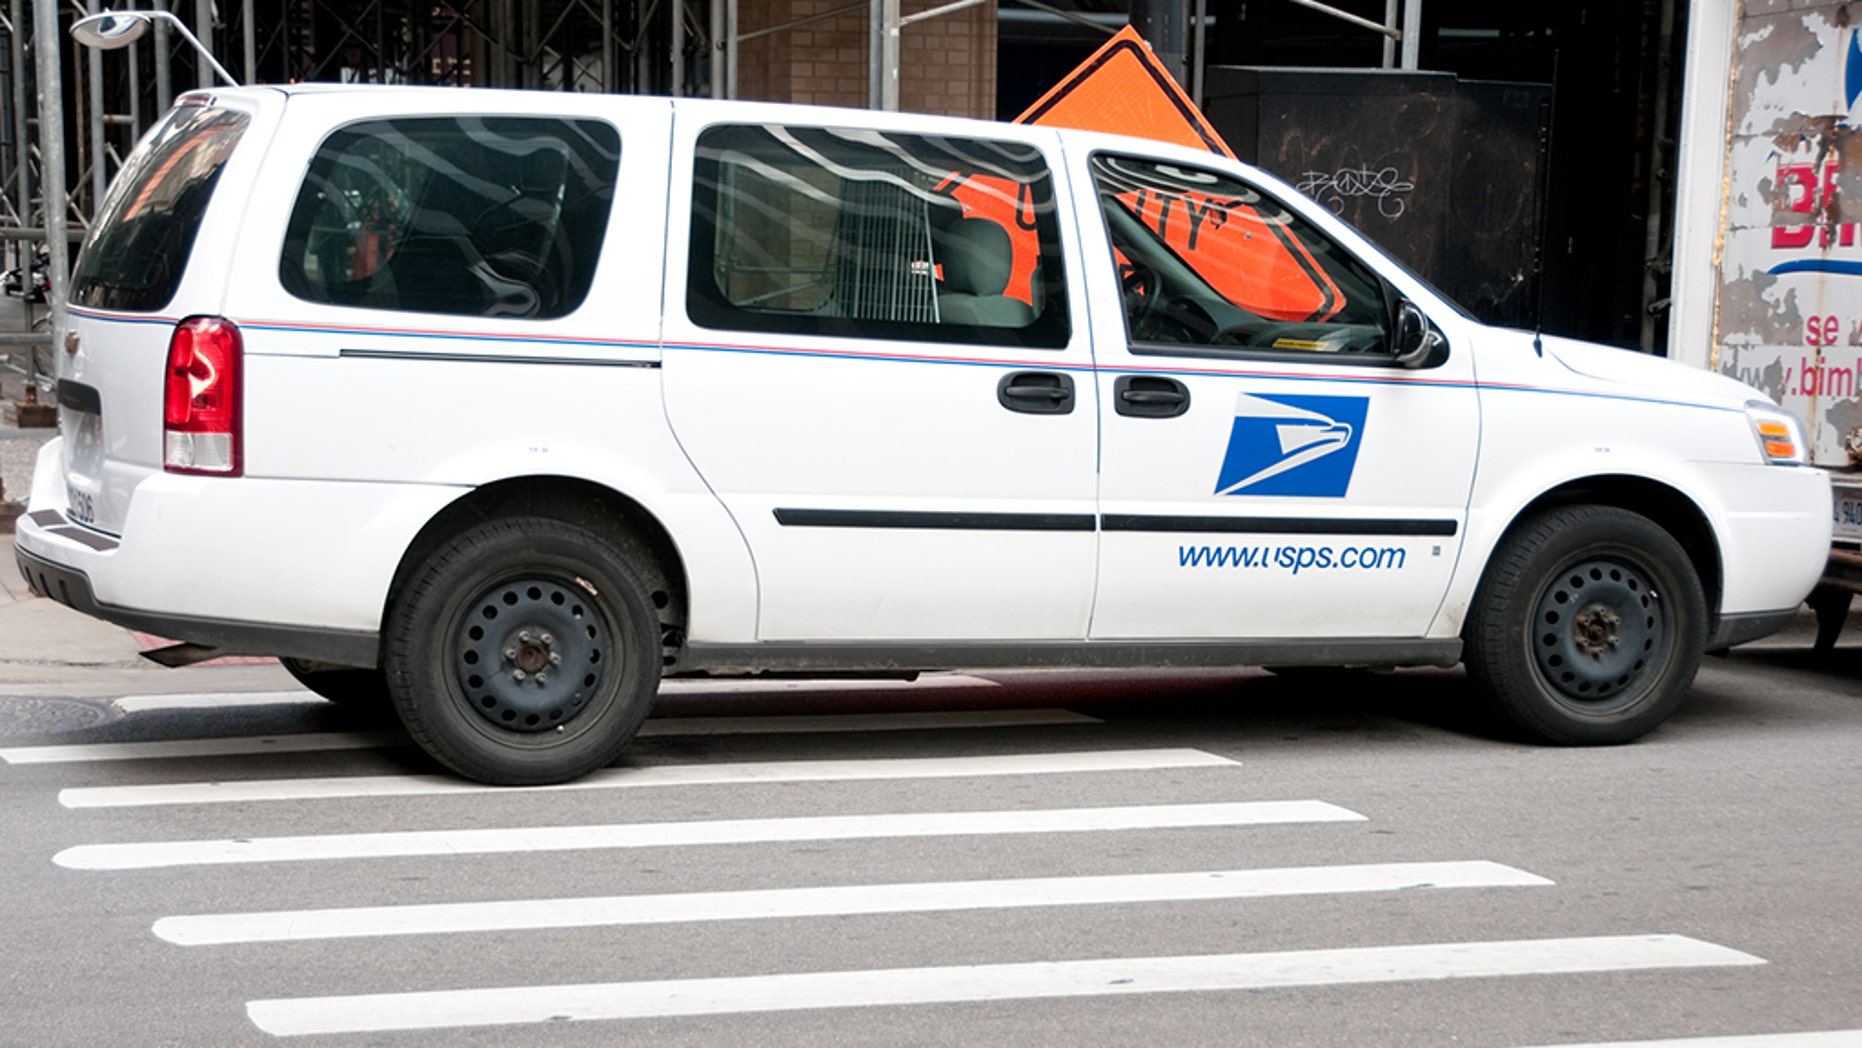 A USPS worker was fatally shot in an interstate in Chicago. (istock)